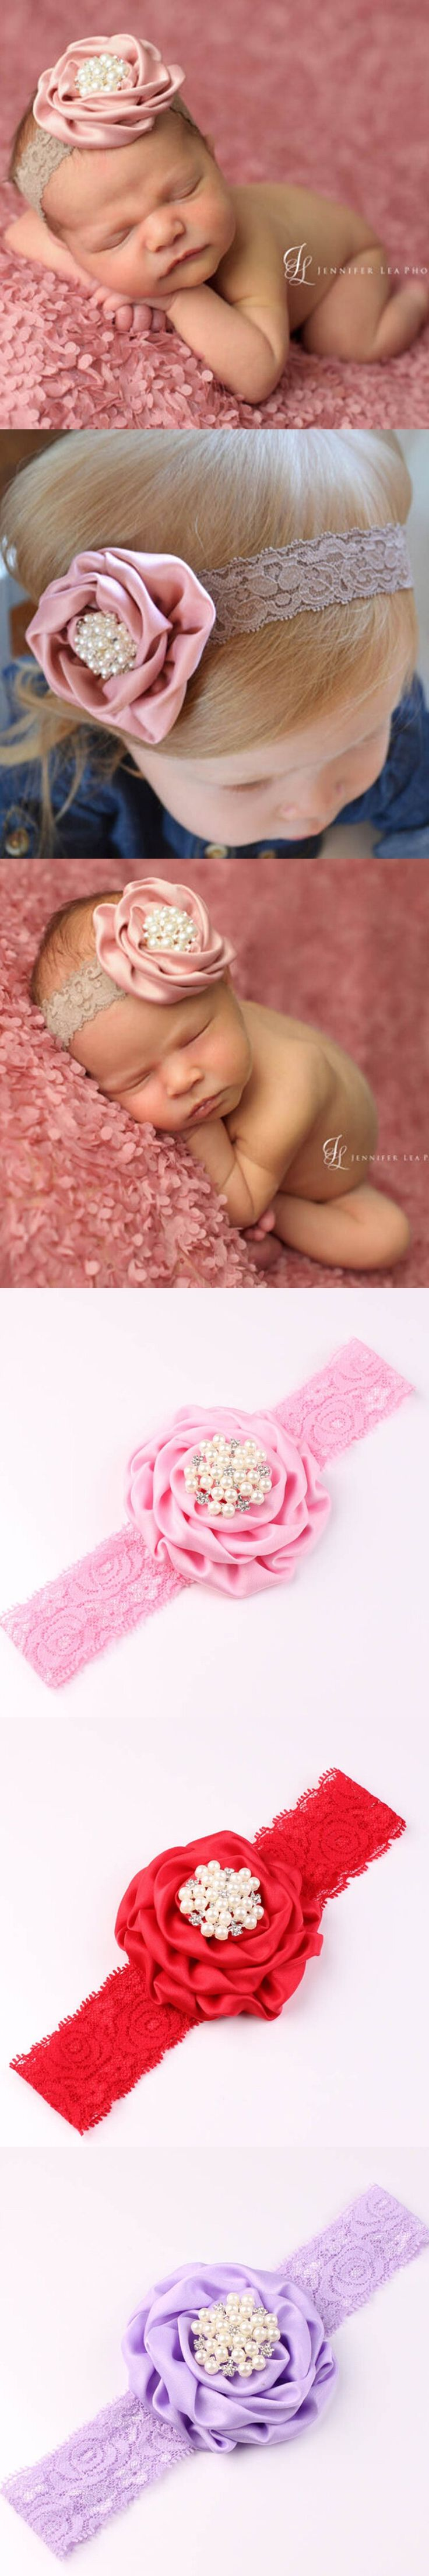 Diy hair accessories for baby girl - New Hot Fashion Lace Headbands Rose Flower Crystal Rhinestone Baby Hair Accessories Baby Girl Children Hair